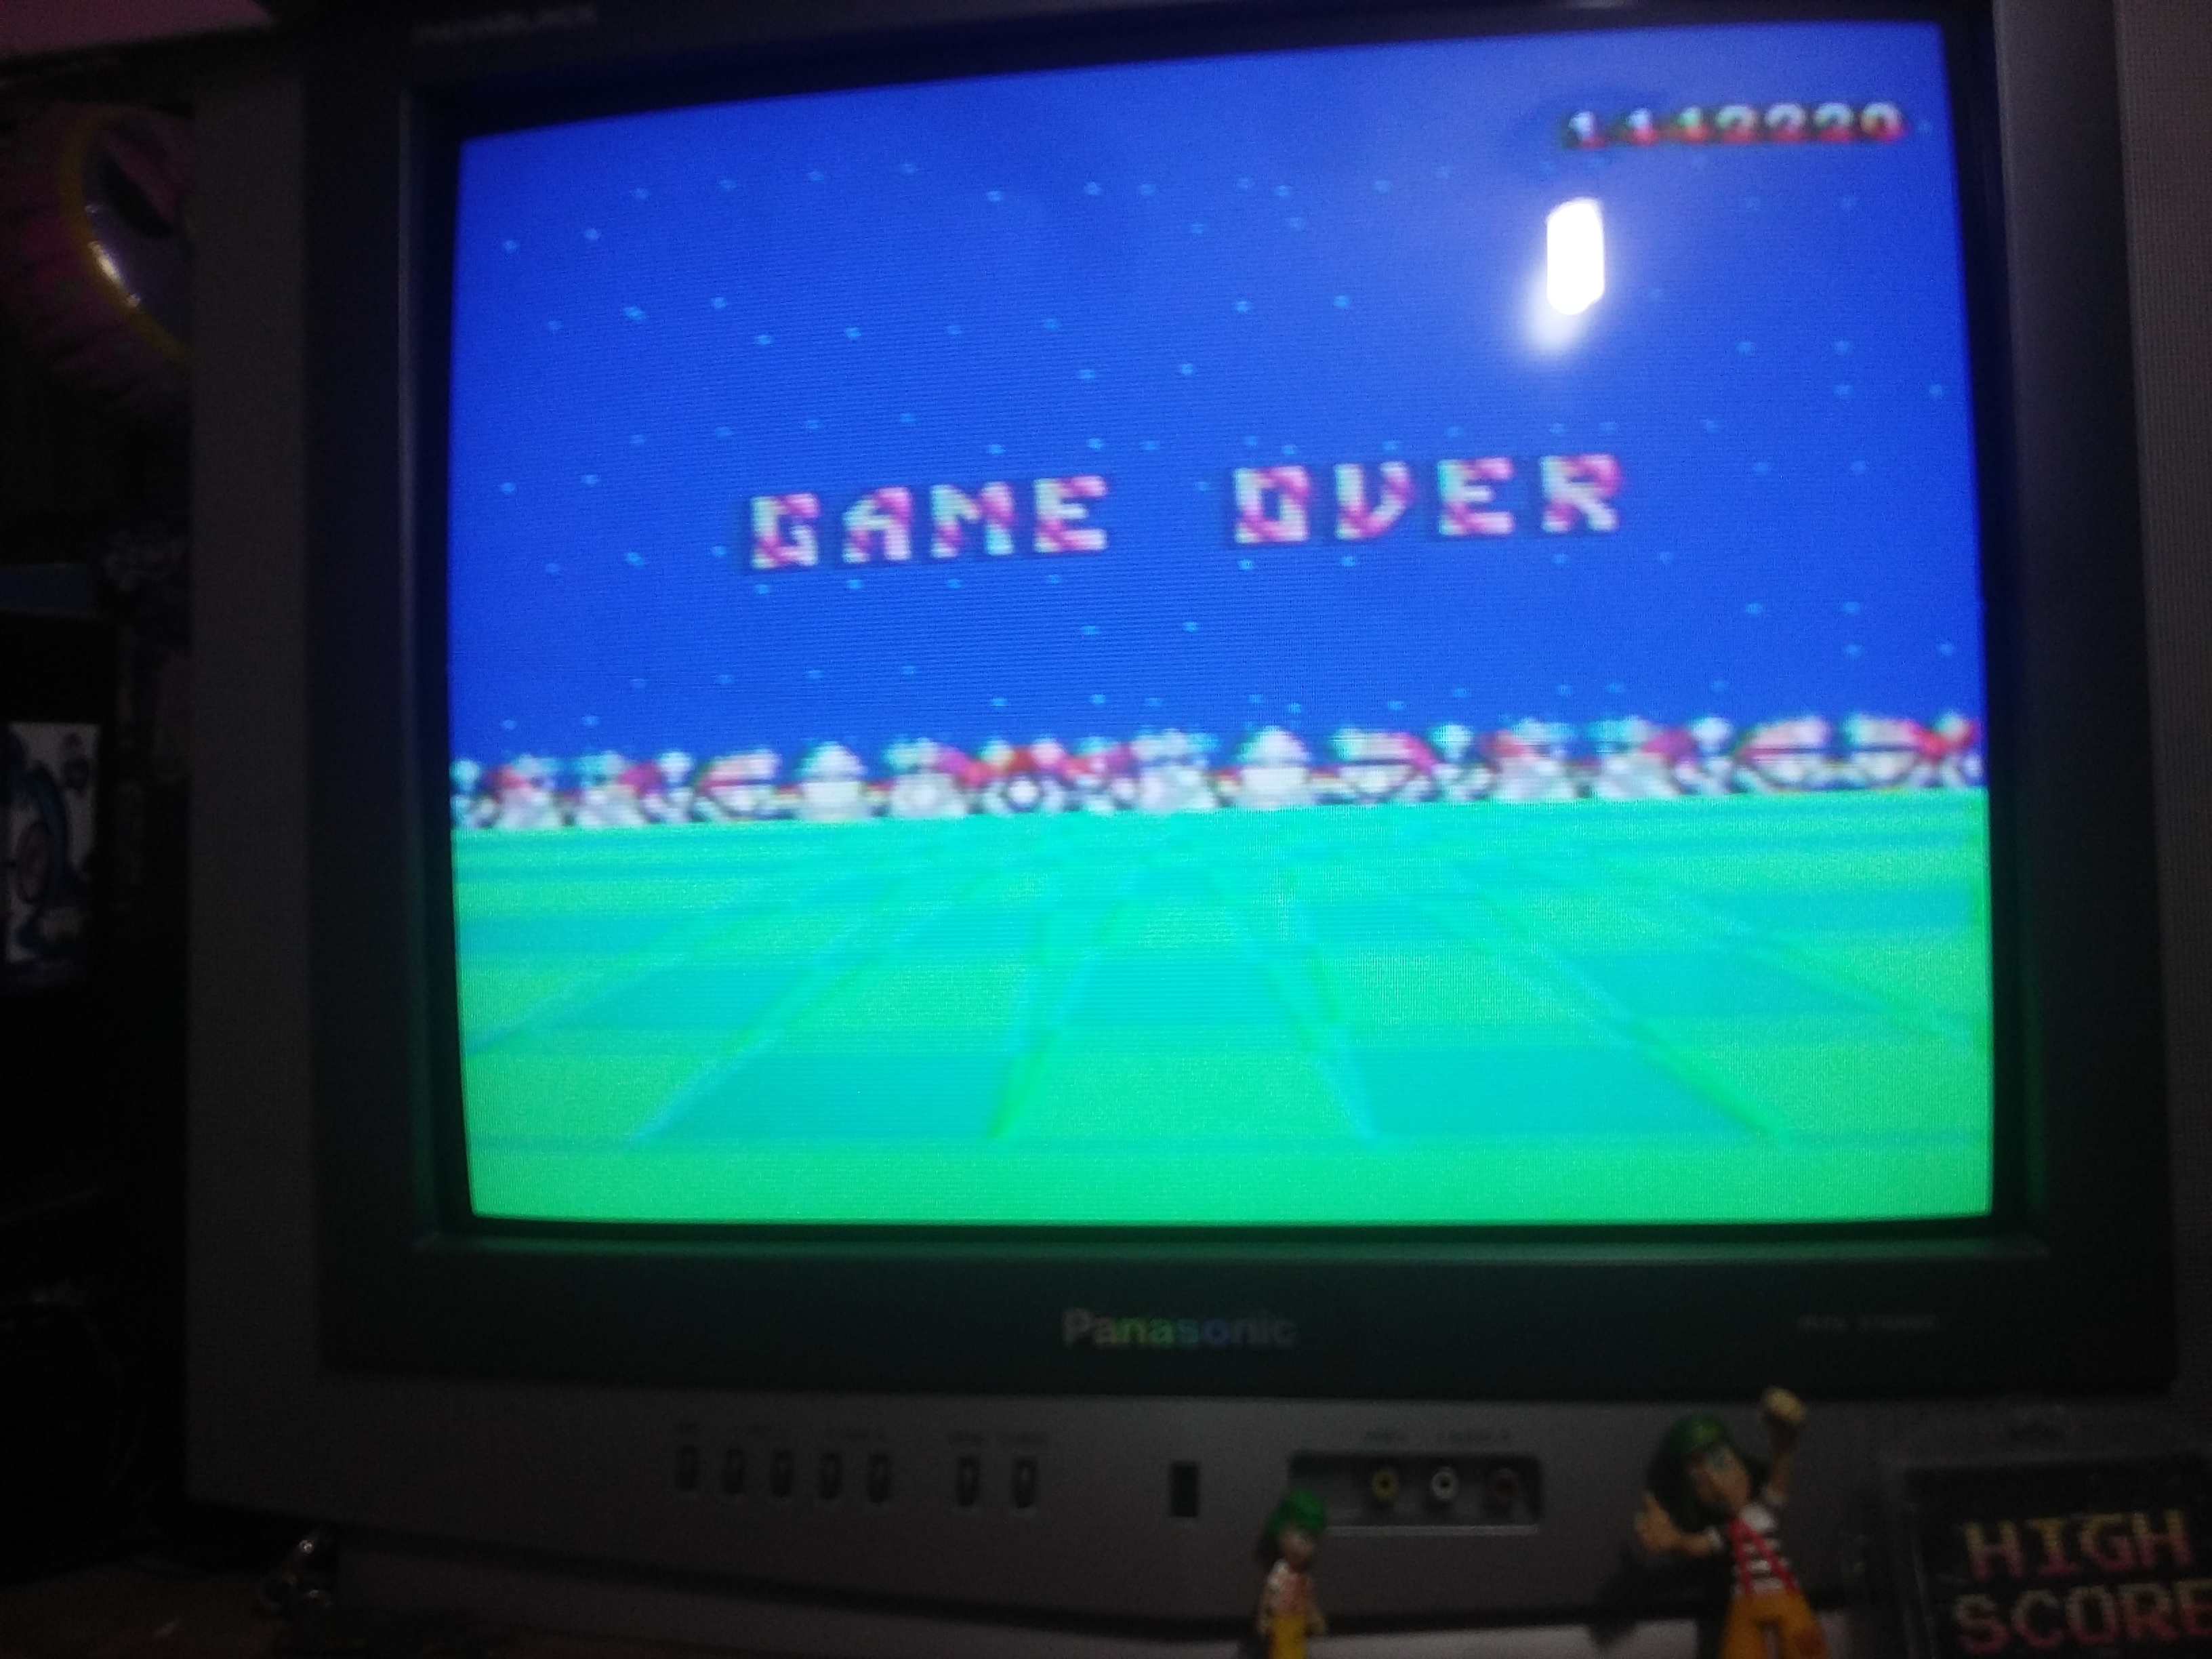 omargeddon: Space Harrier 3-D (Sega Master System) 1,442,220 points on 2018-08-18 19:11:25